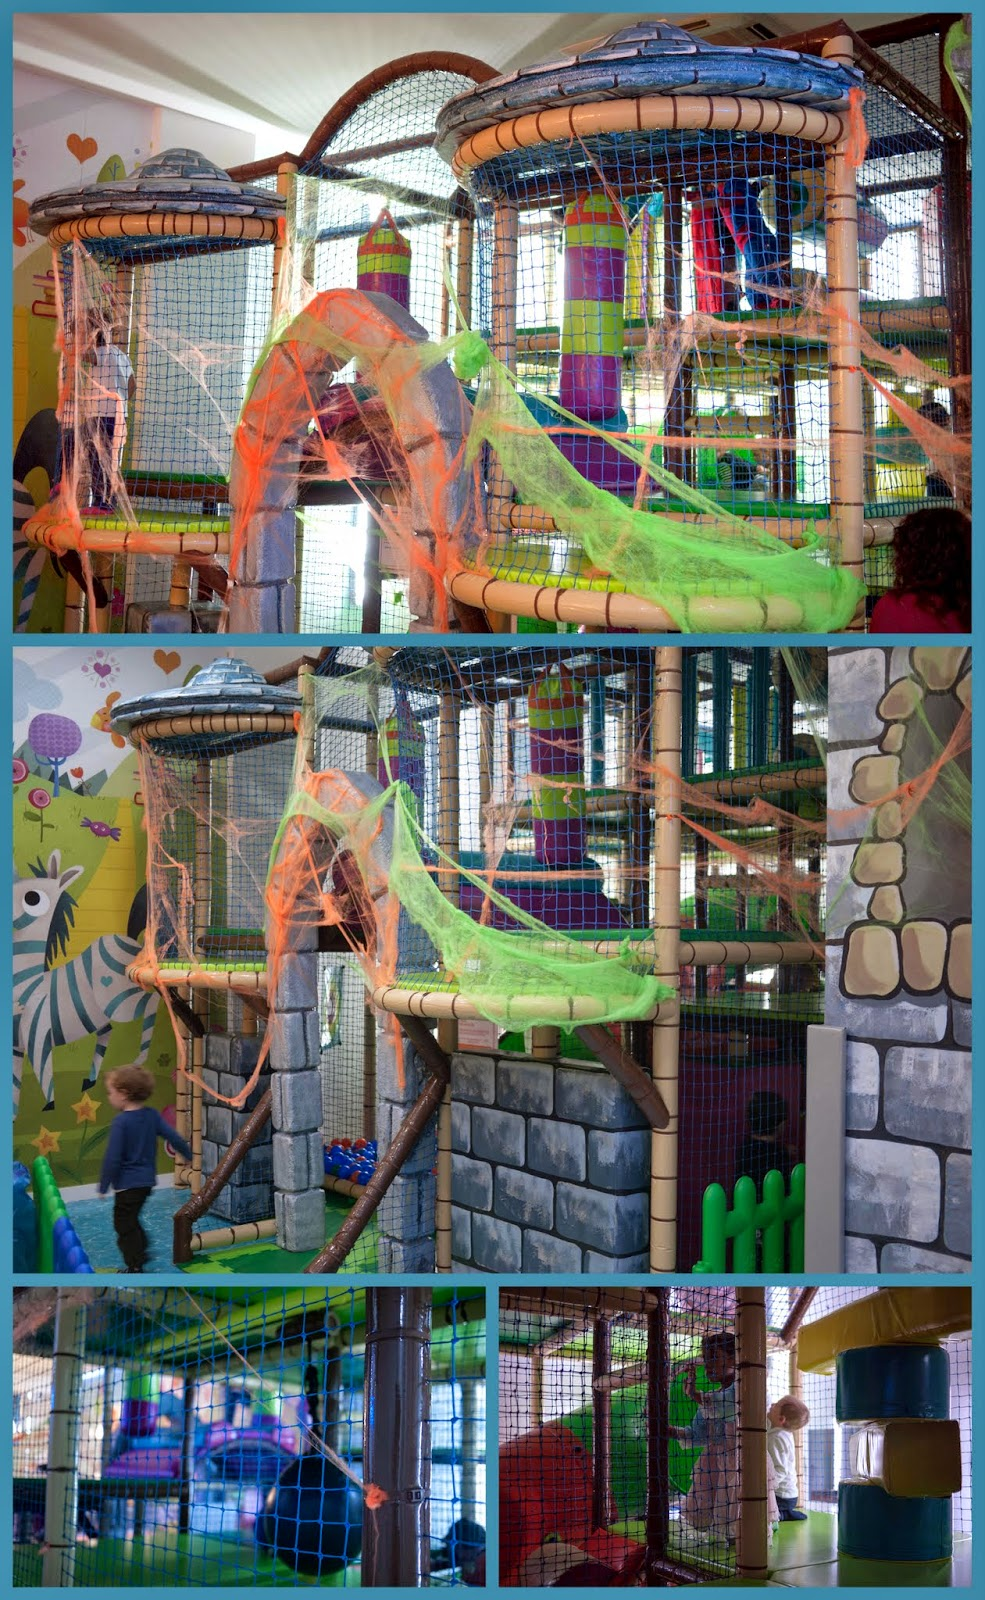 Collage de Imágenes del Castillo de bolas de Little Kingdom